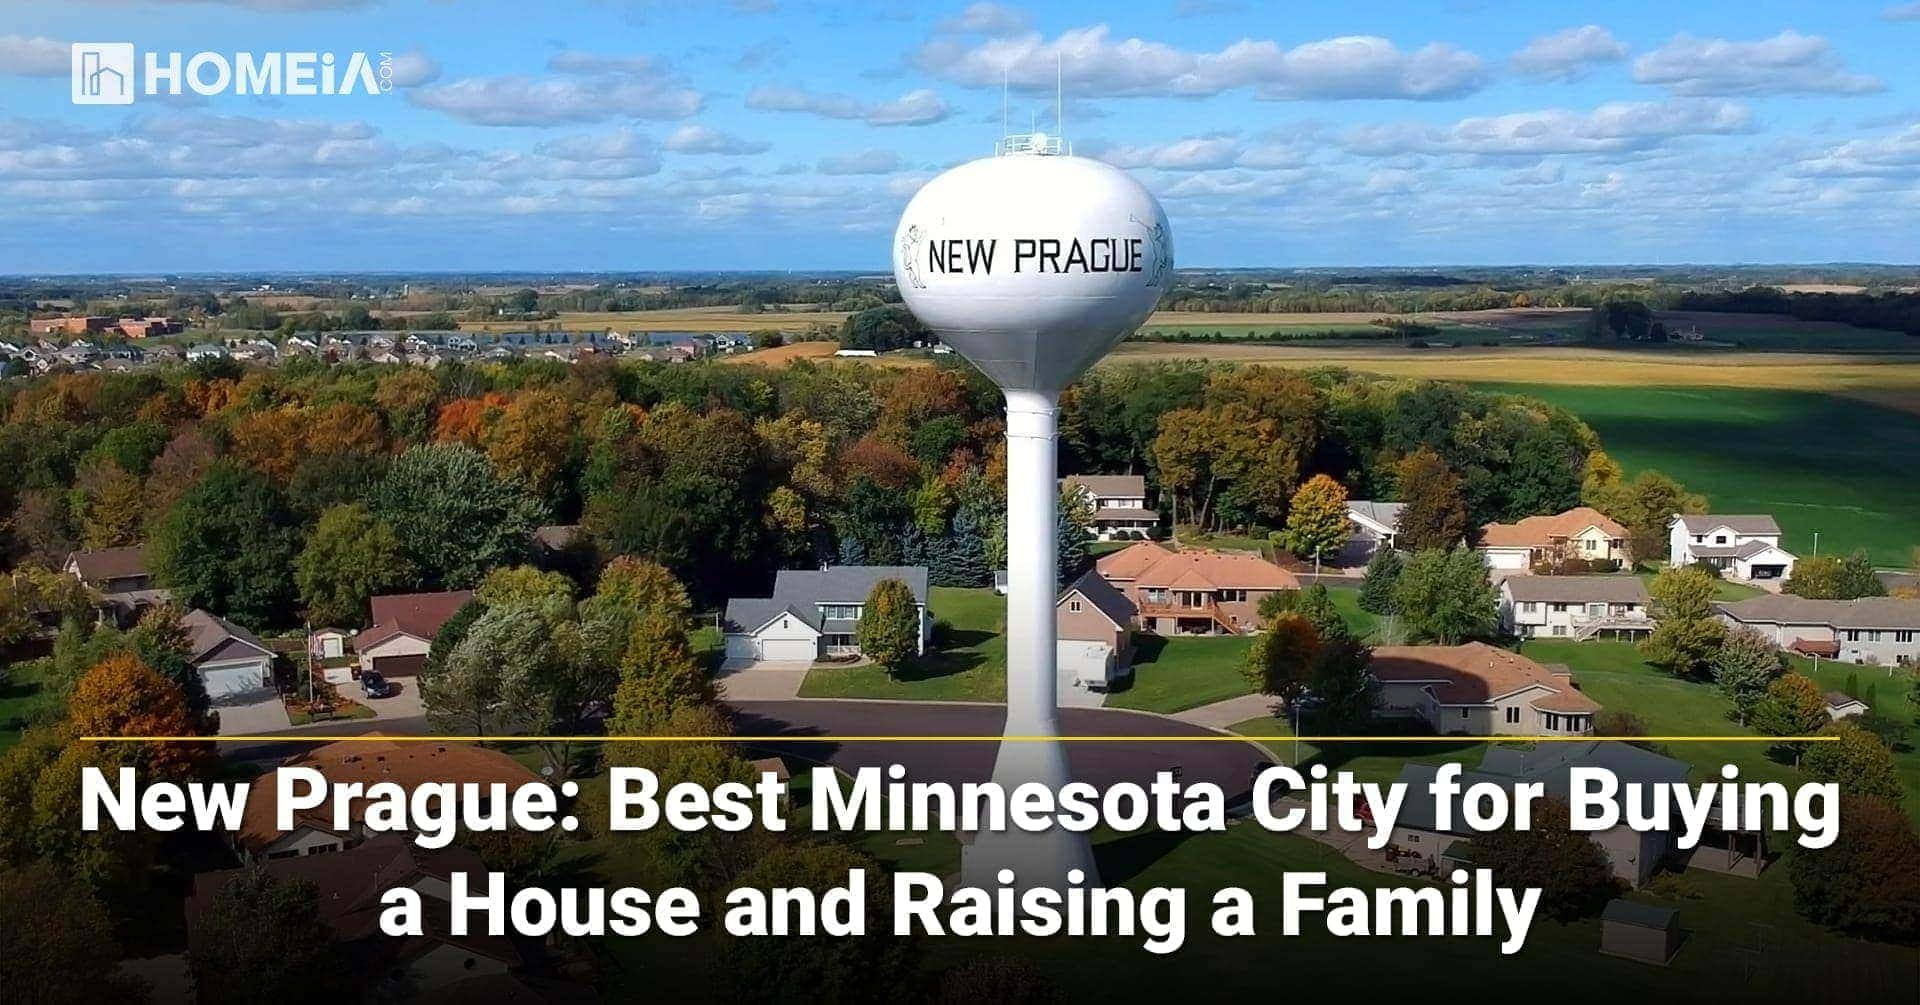 7 Key Factors that make New Prague one of the Best MN Cities for Buying a House and Raising a Family